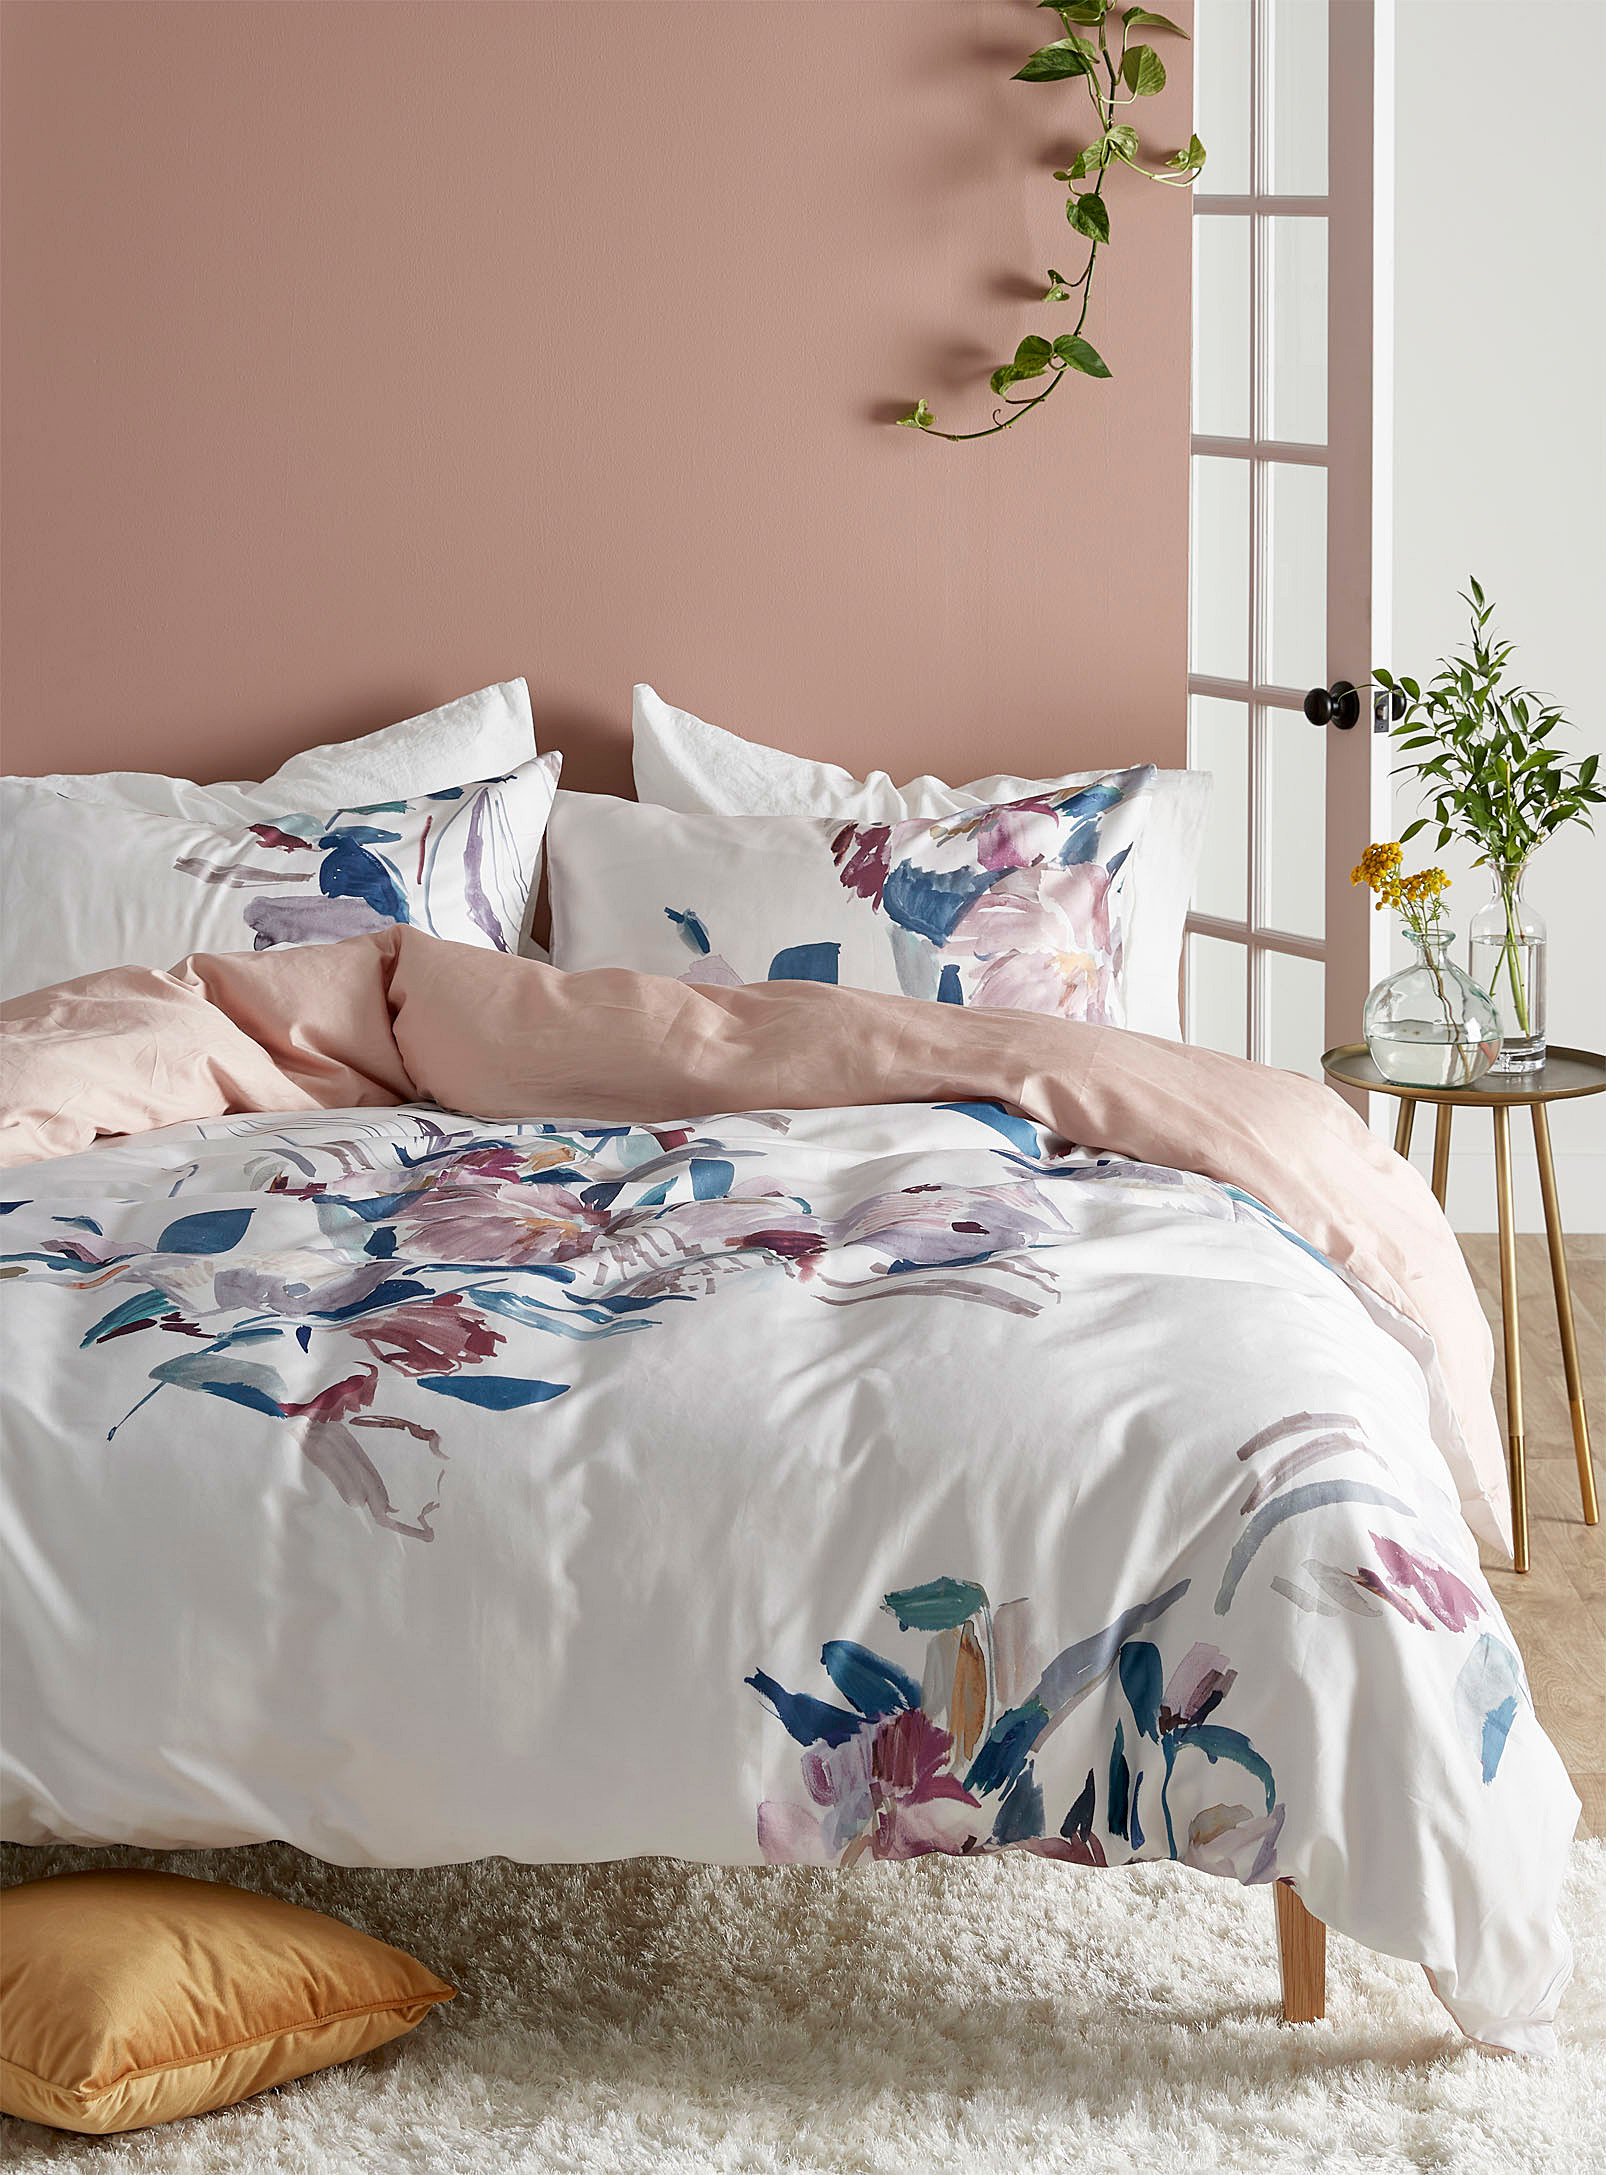 A duvet on a bed with tons of pillows